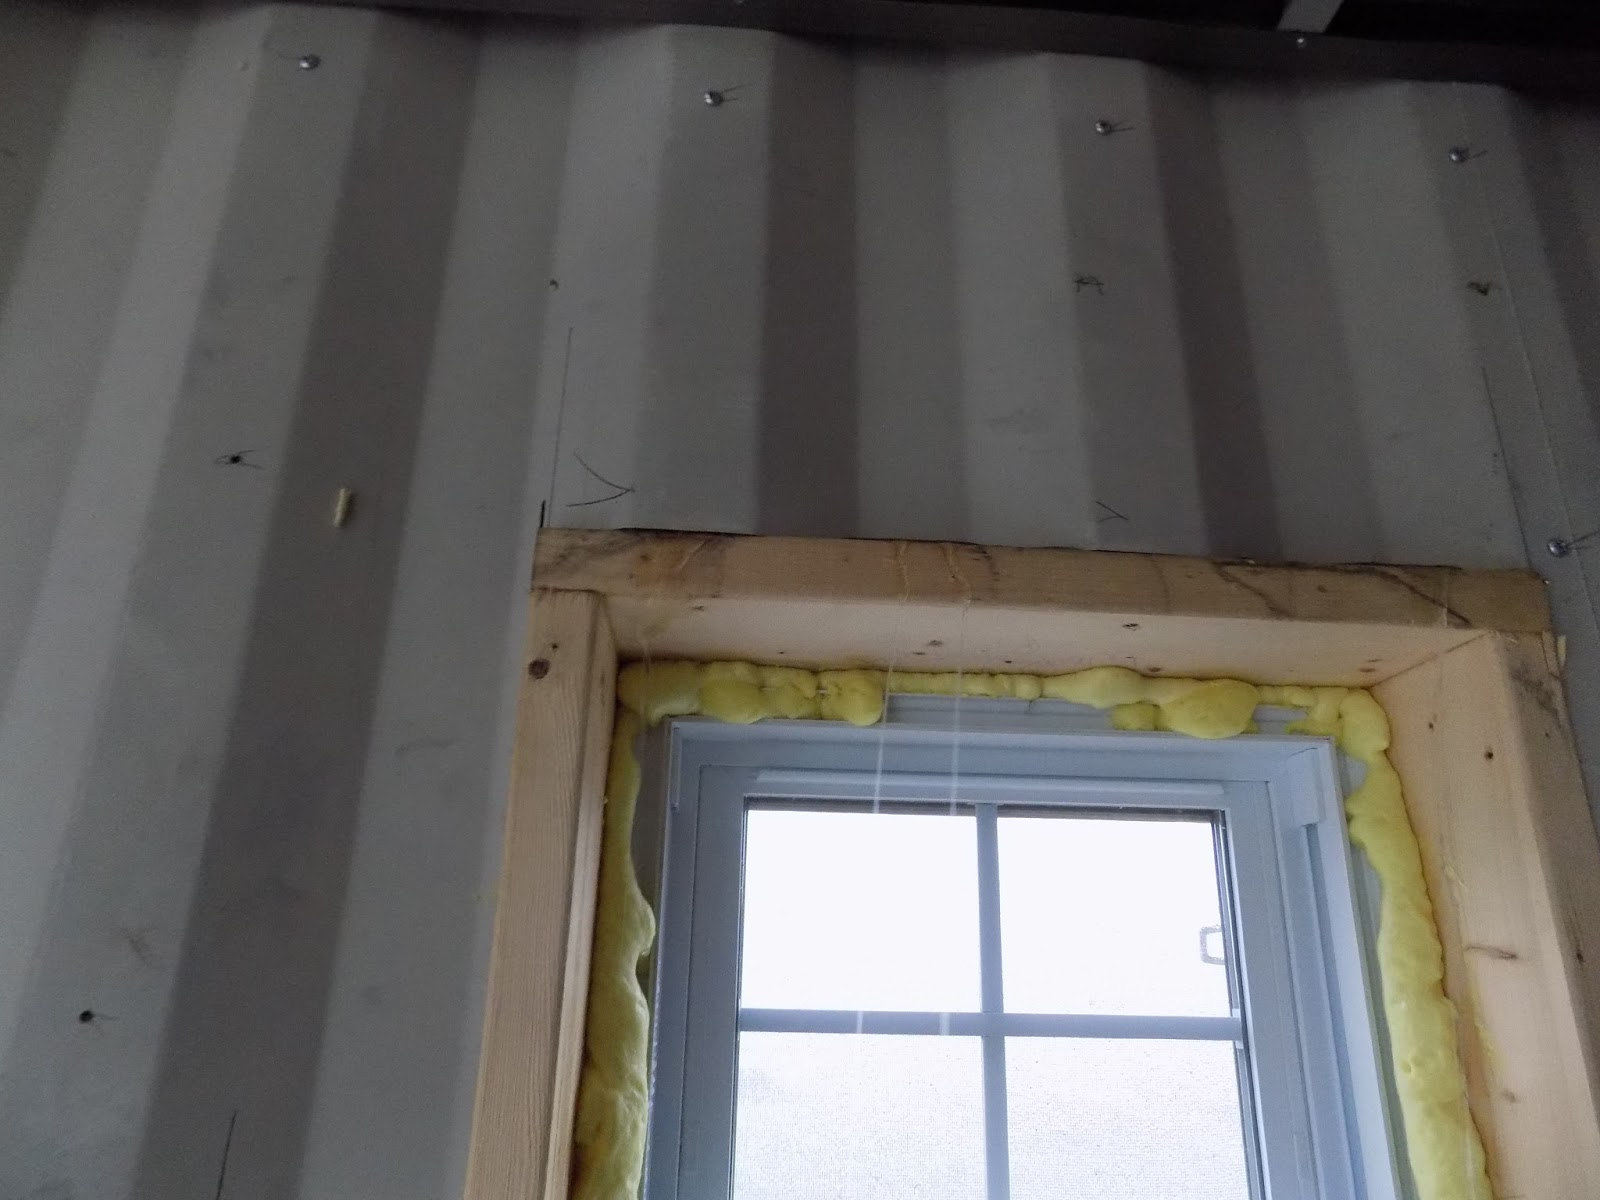 Intermodal house strapping on windows in insulation for High insulation windows